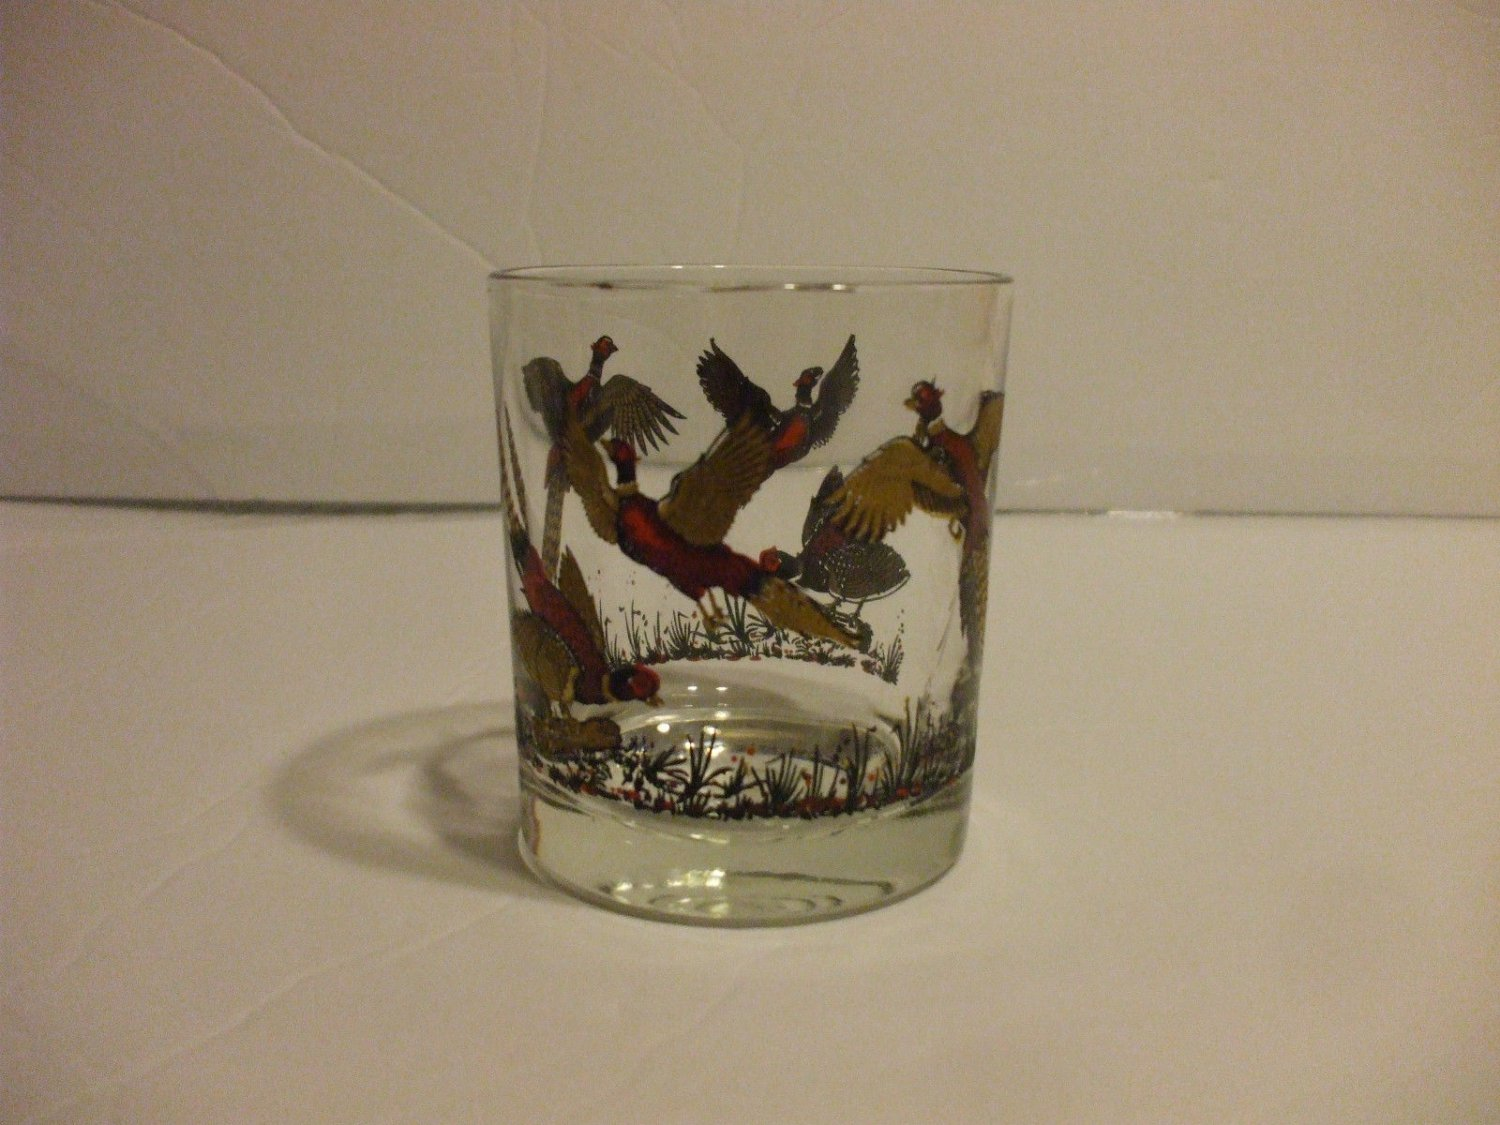 Glass Tumbler Red And Gold Bird Design 6-10oz